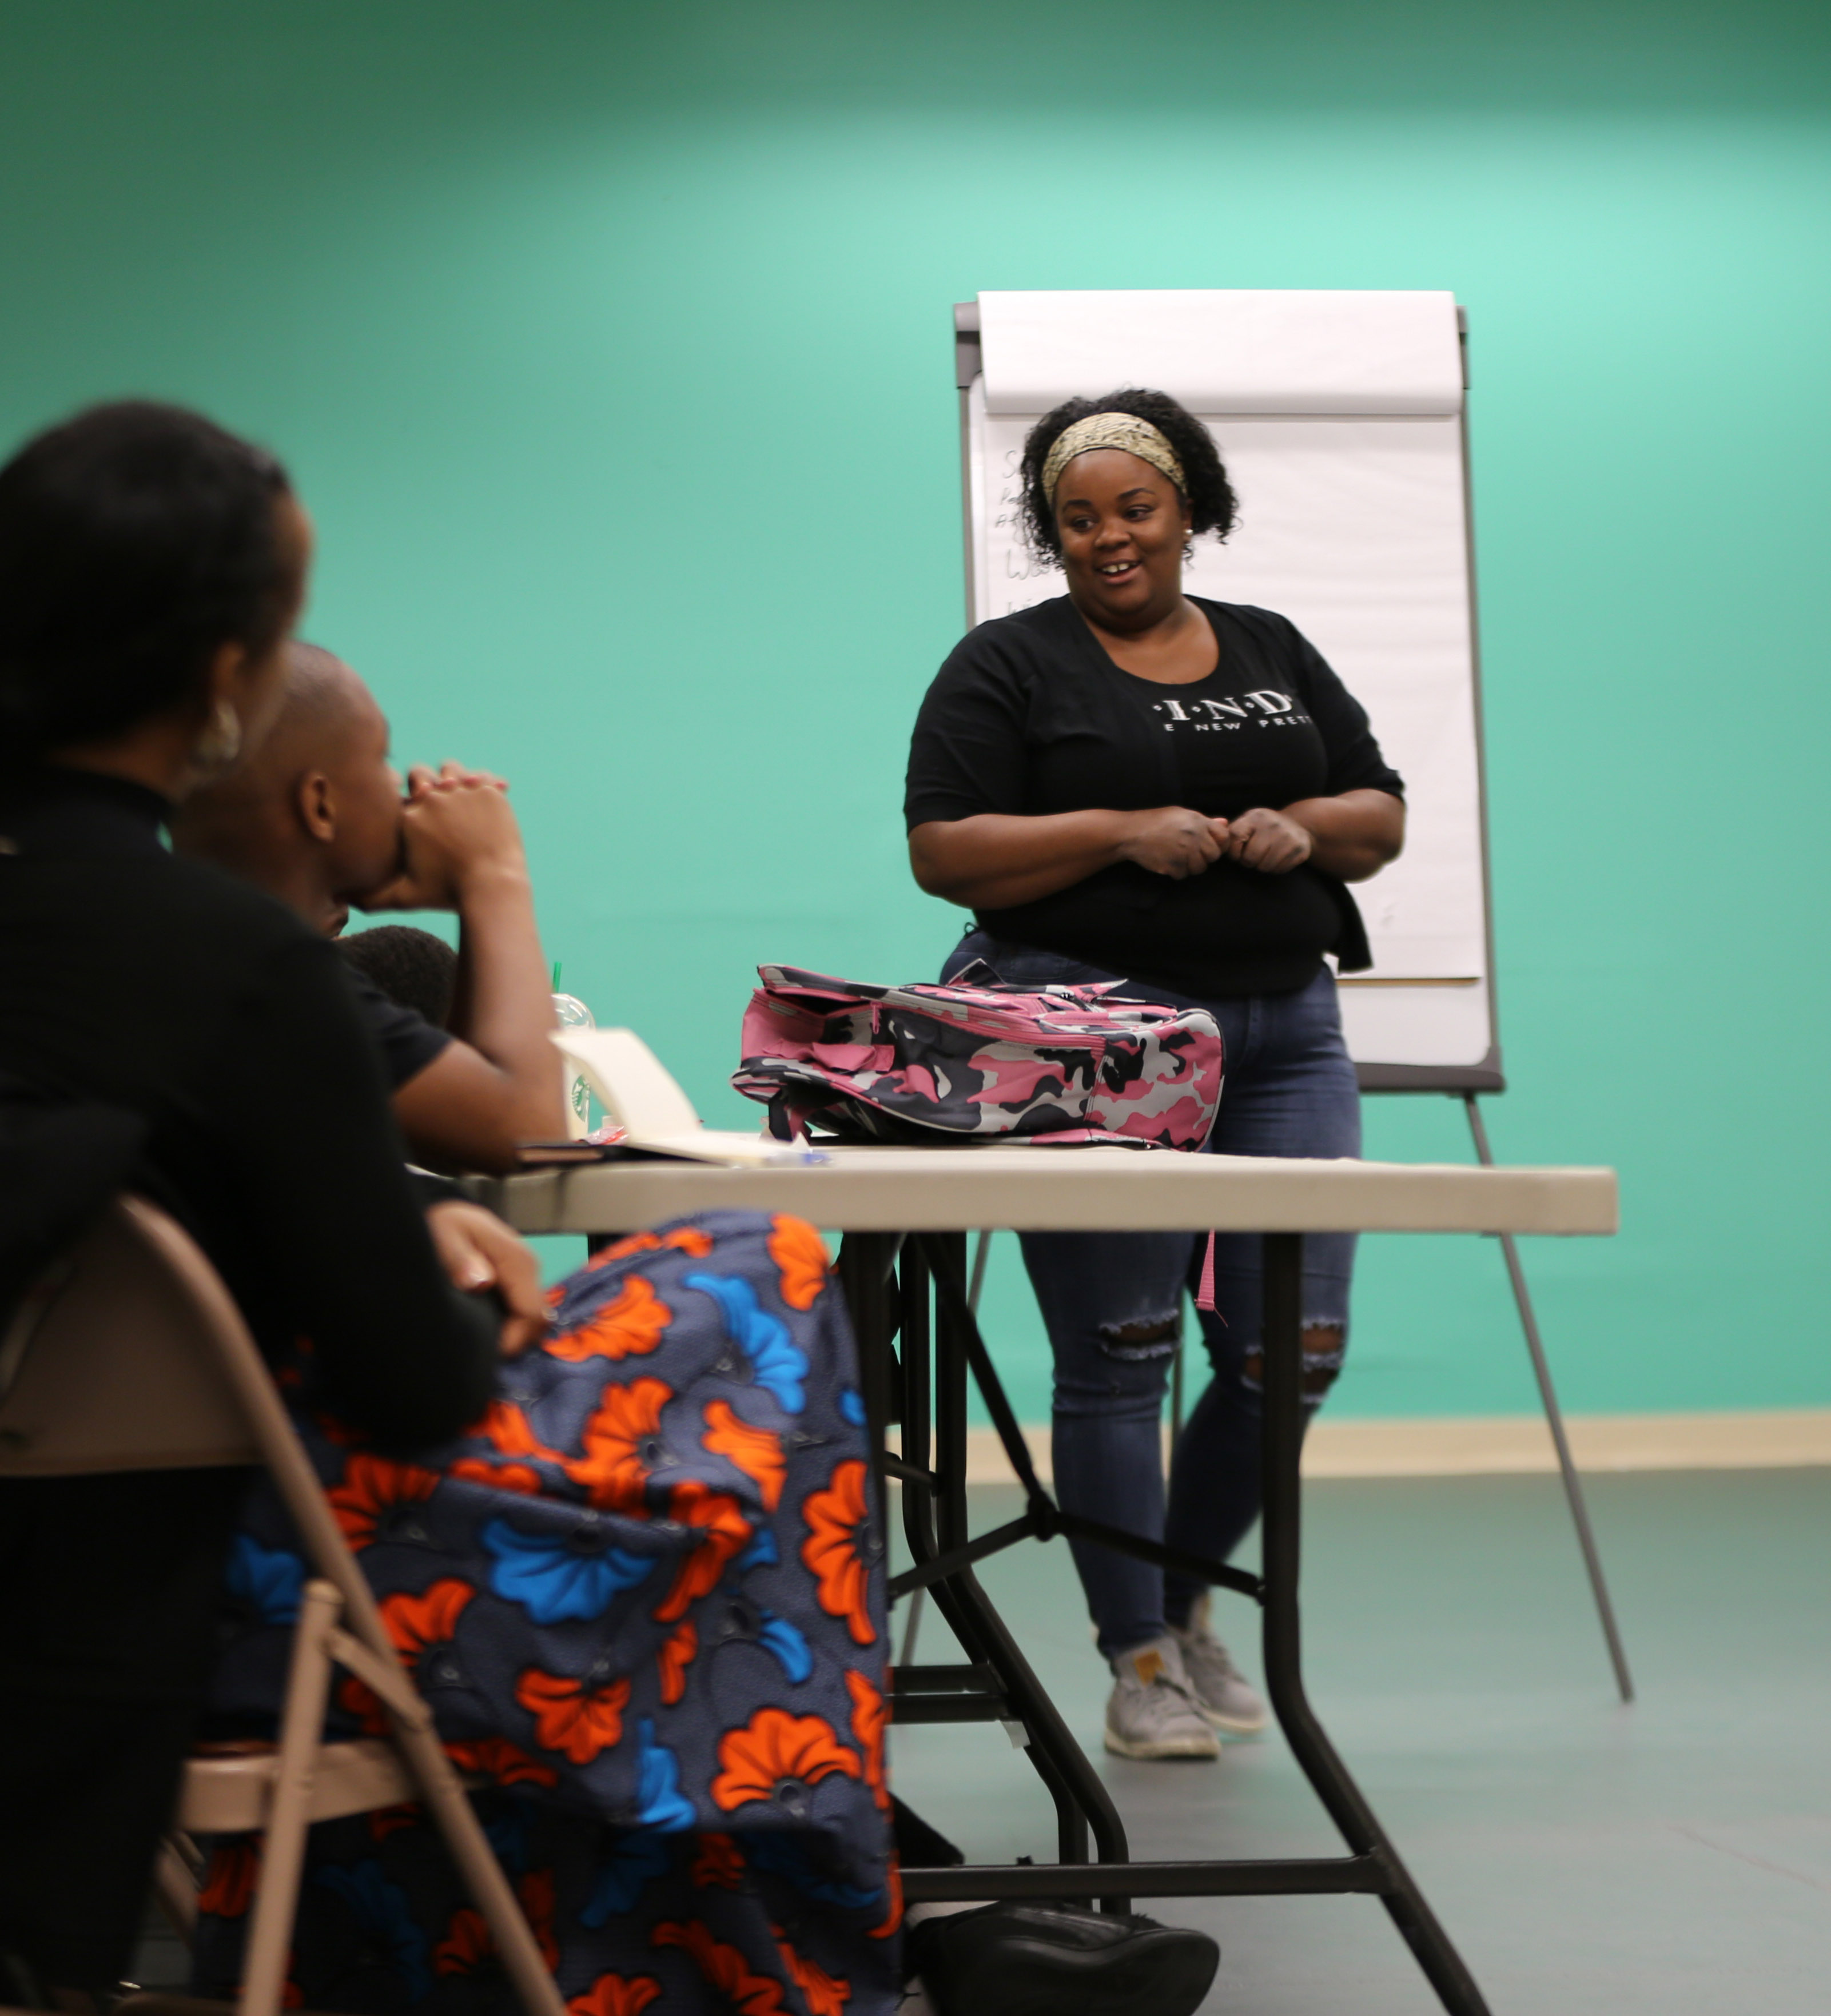 Performer Sangin Sara leads an MBSK Workshop at the African American Arts and Culture Complex for the HRC in February 2018